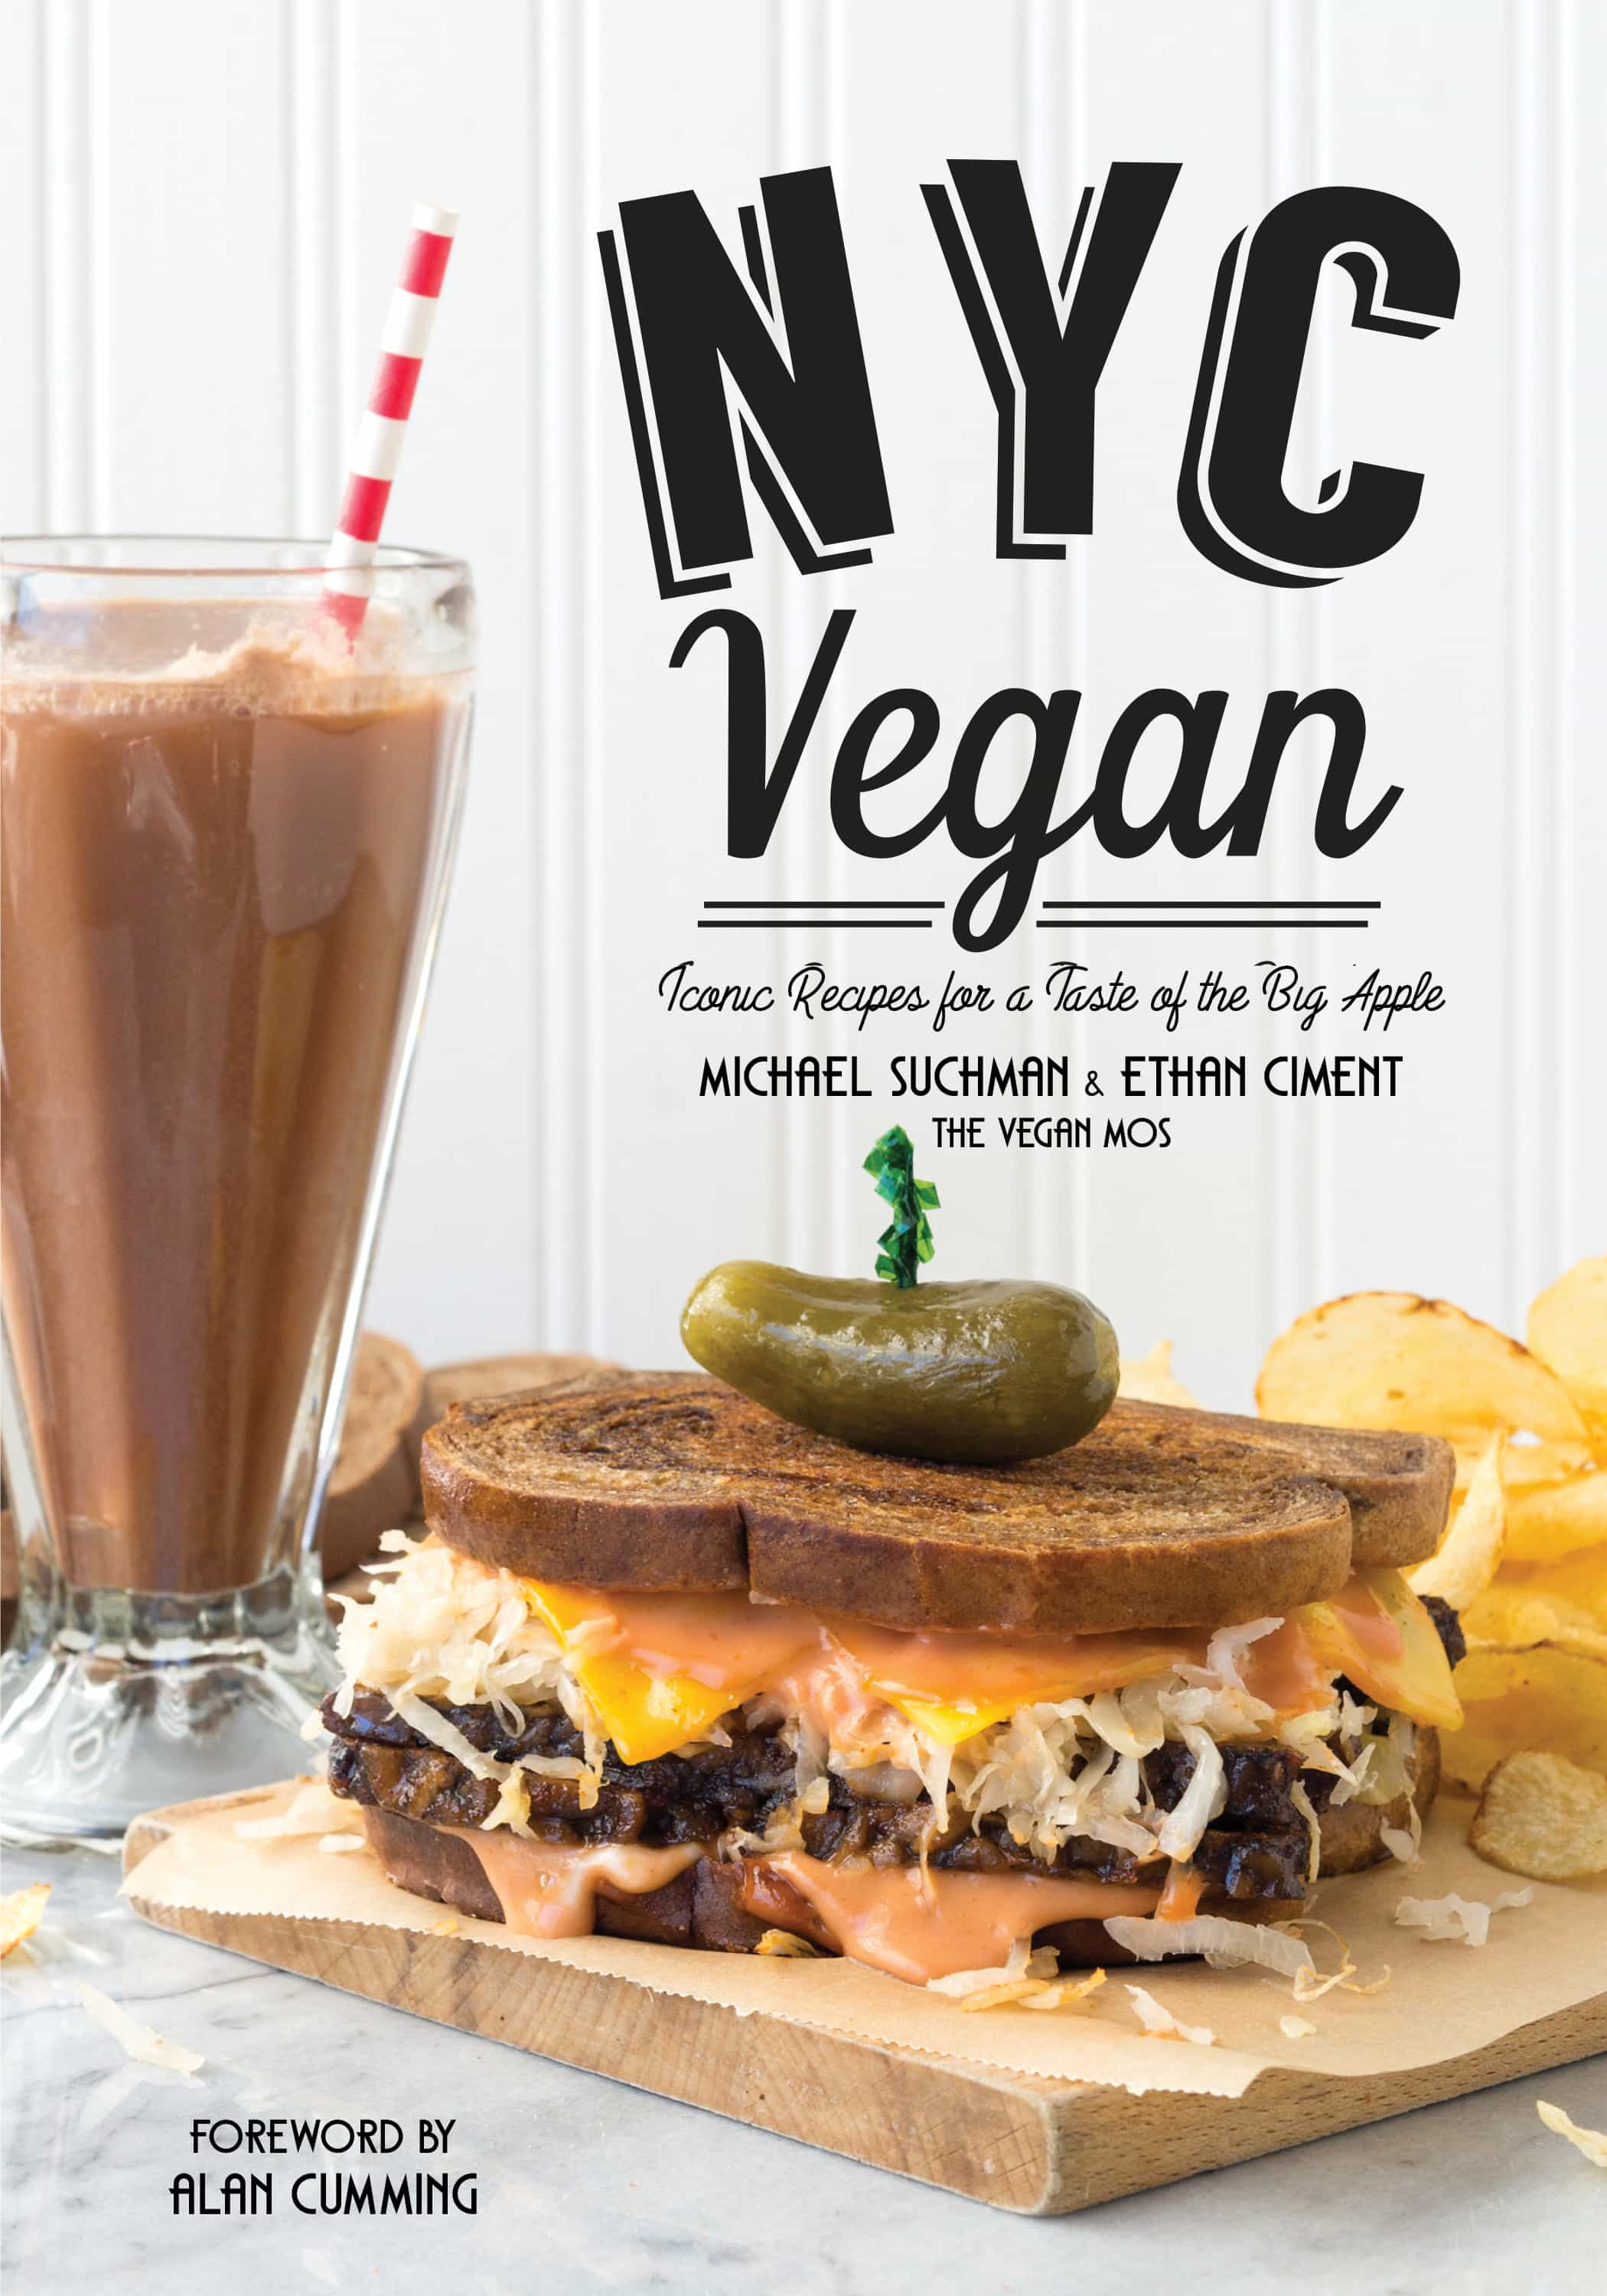 Pastrami sandwich on rye next to a chocolate milkshake on the cover of the cookbook, NYC Vegan